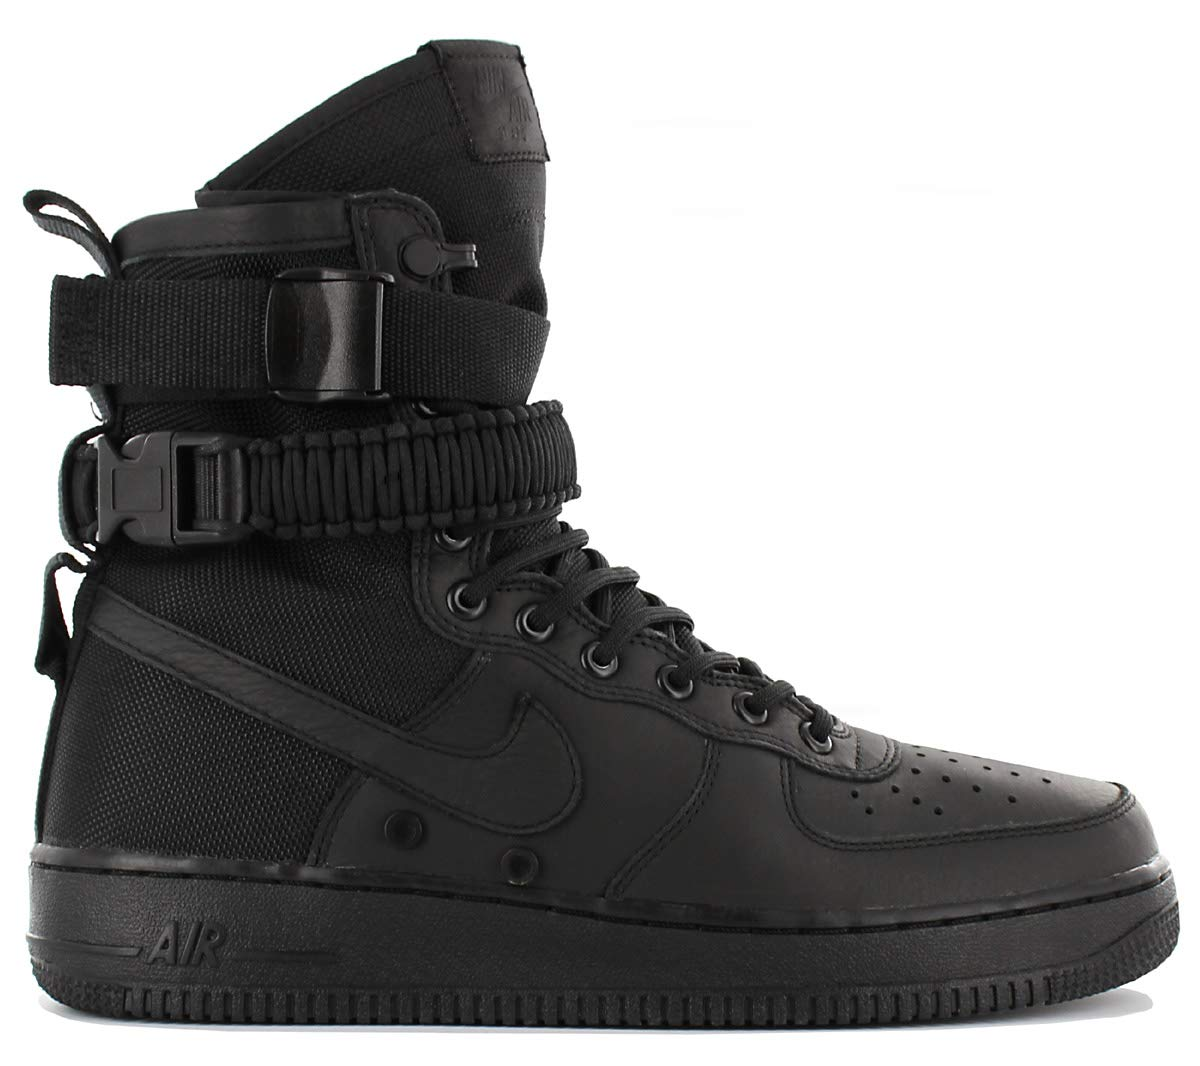 61V%2B6TeLLNL - Nike Air Force SF AF1 High Boot Sneaker Boots Black Men Trainers Sneaker Shoes